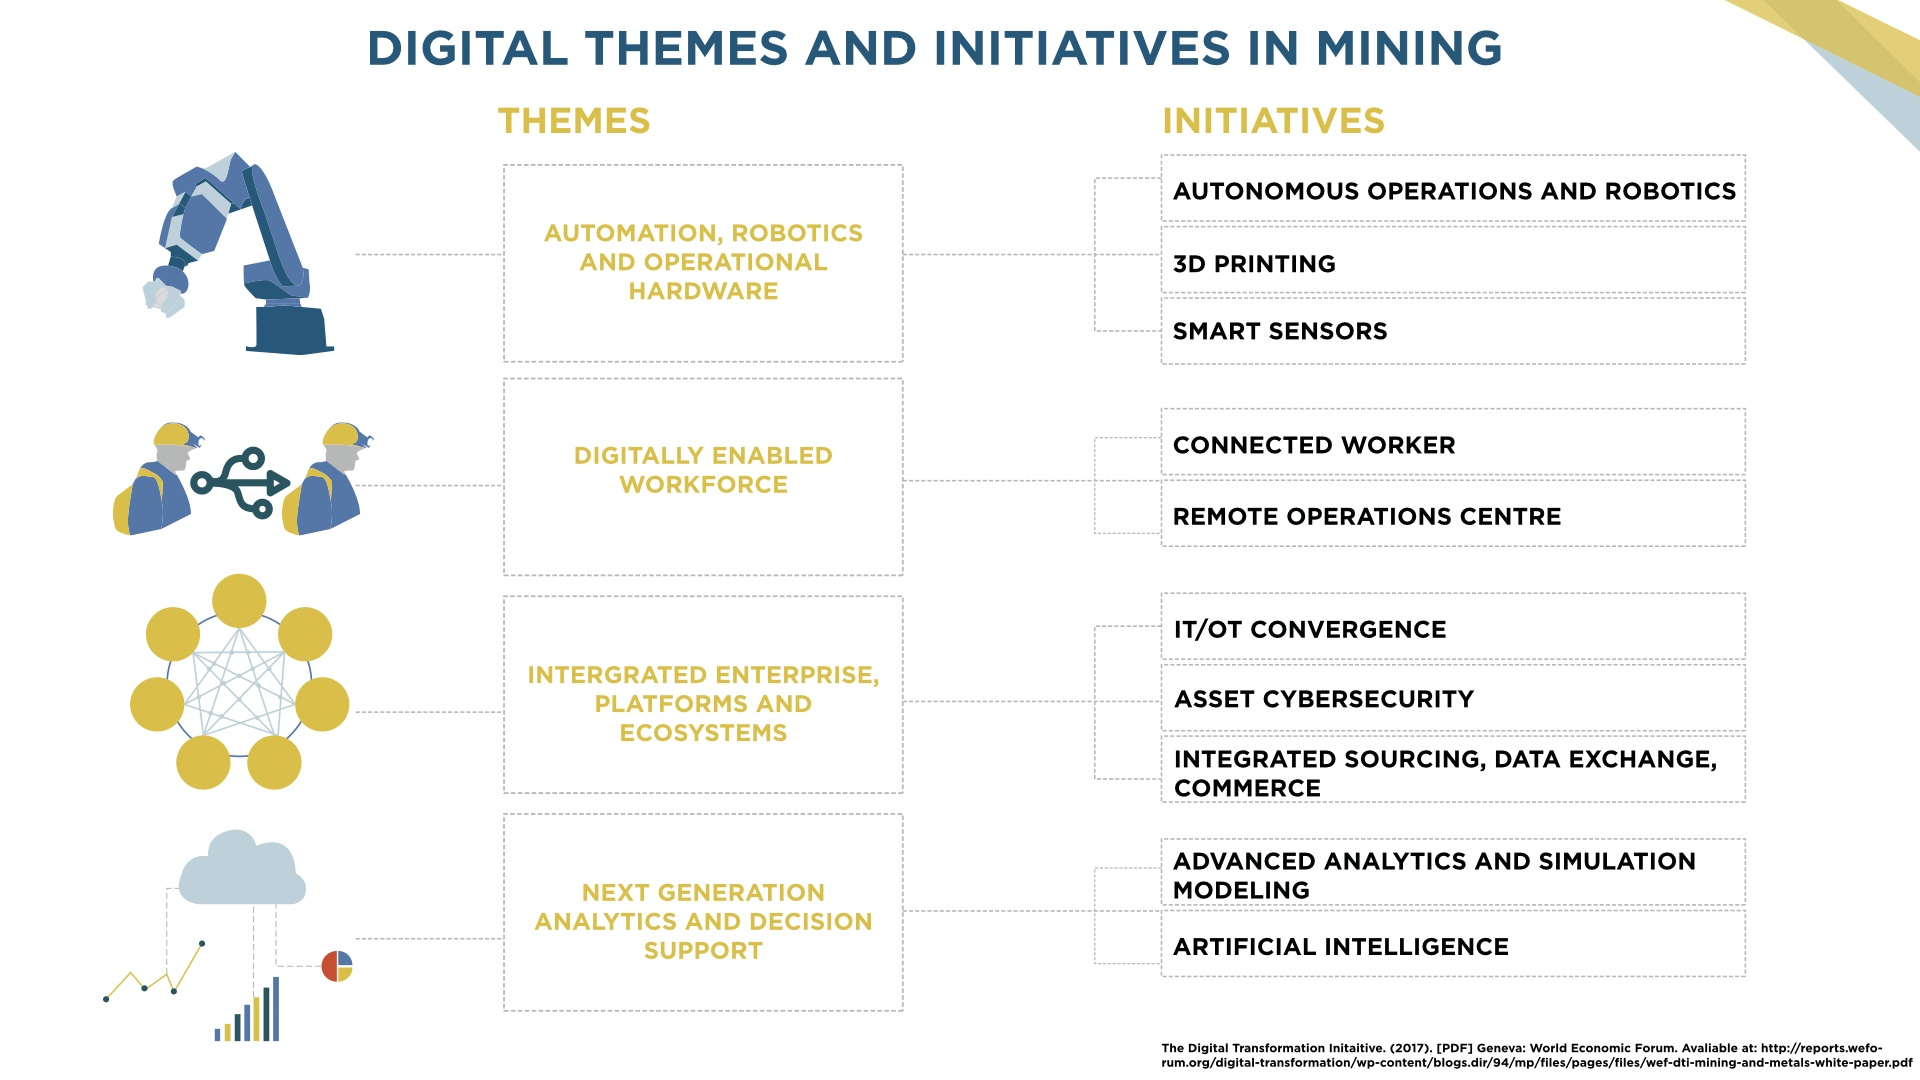 ASN_Digital Themes and Initiatives in Mining